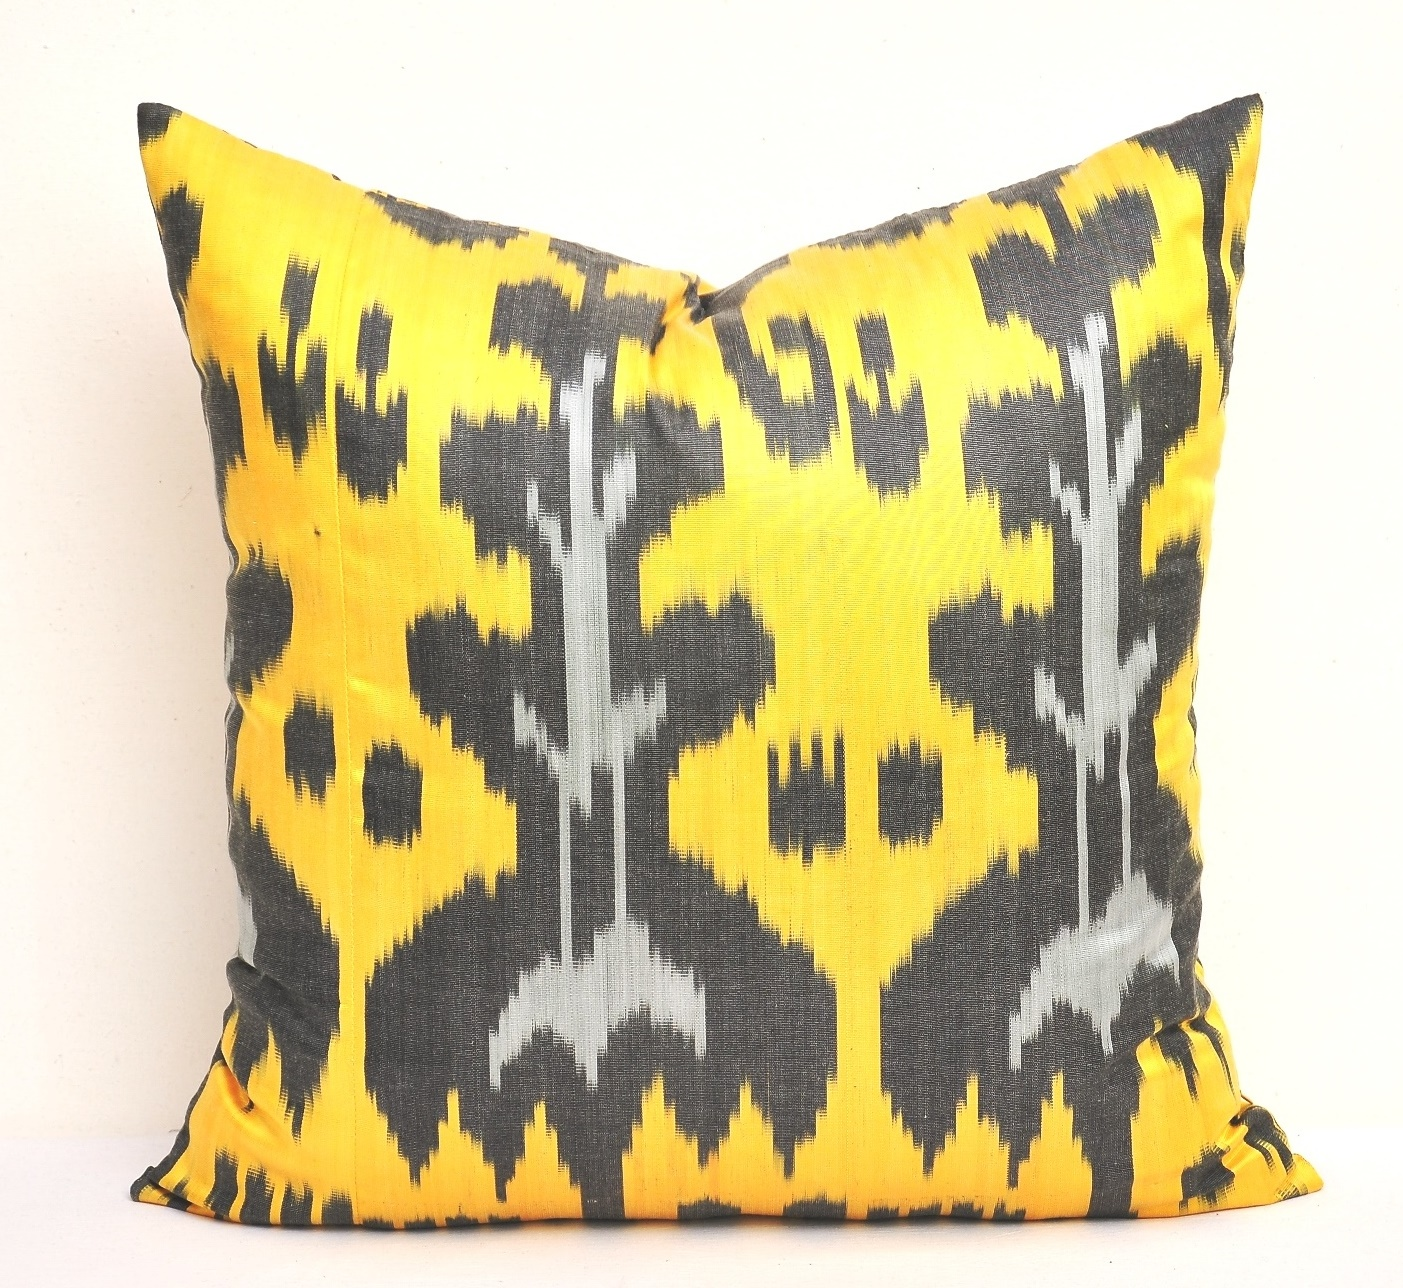 Yellow Silk Decorative Pillows : Yellow silk ikat throw pillow - Alesouk Grand Bazaar online shopping